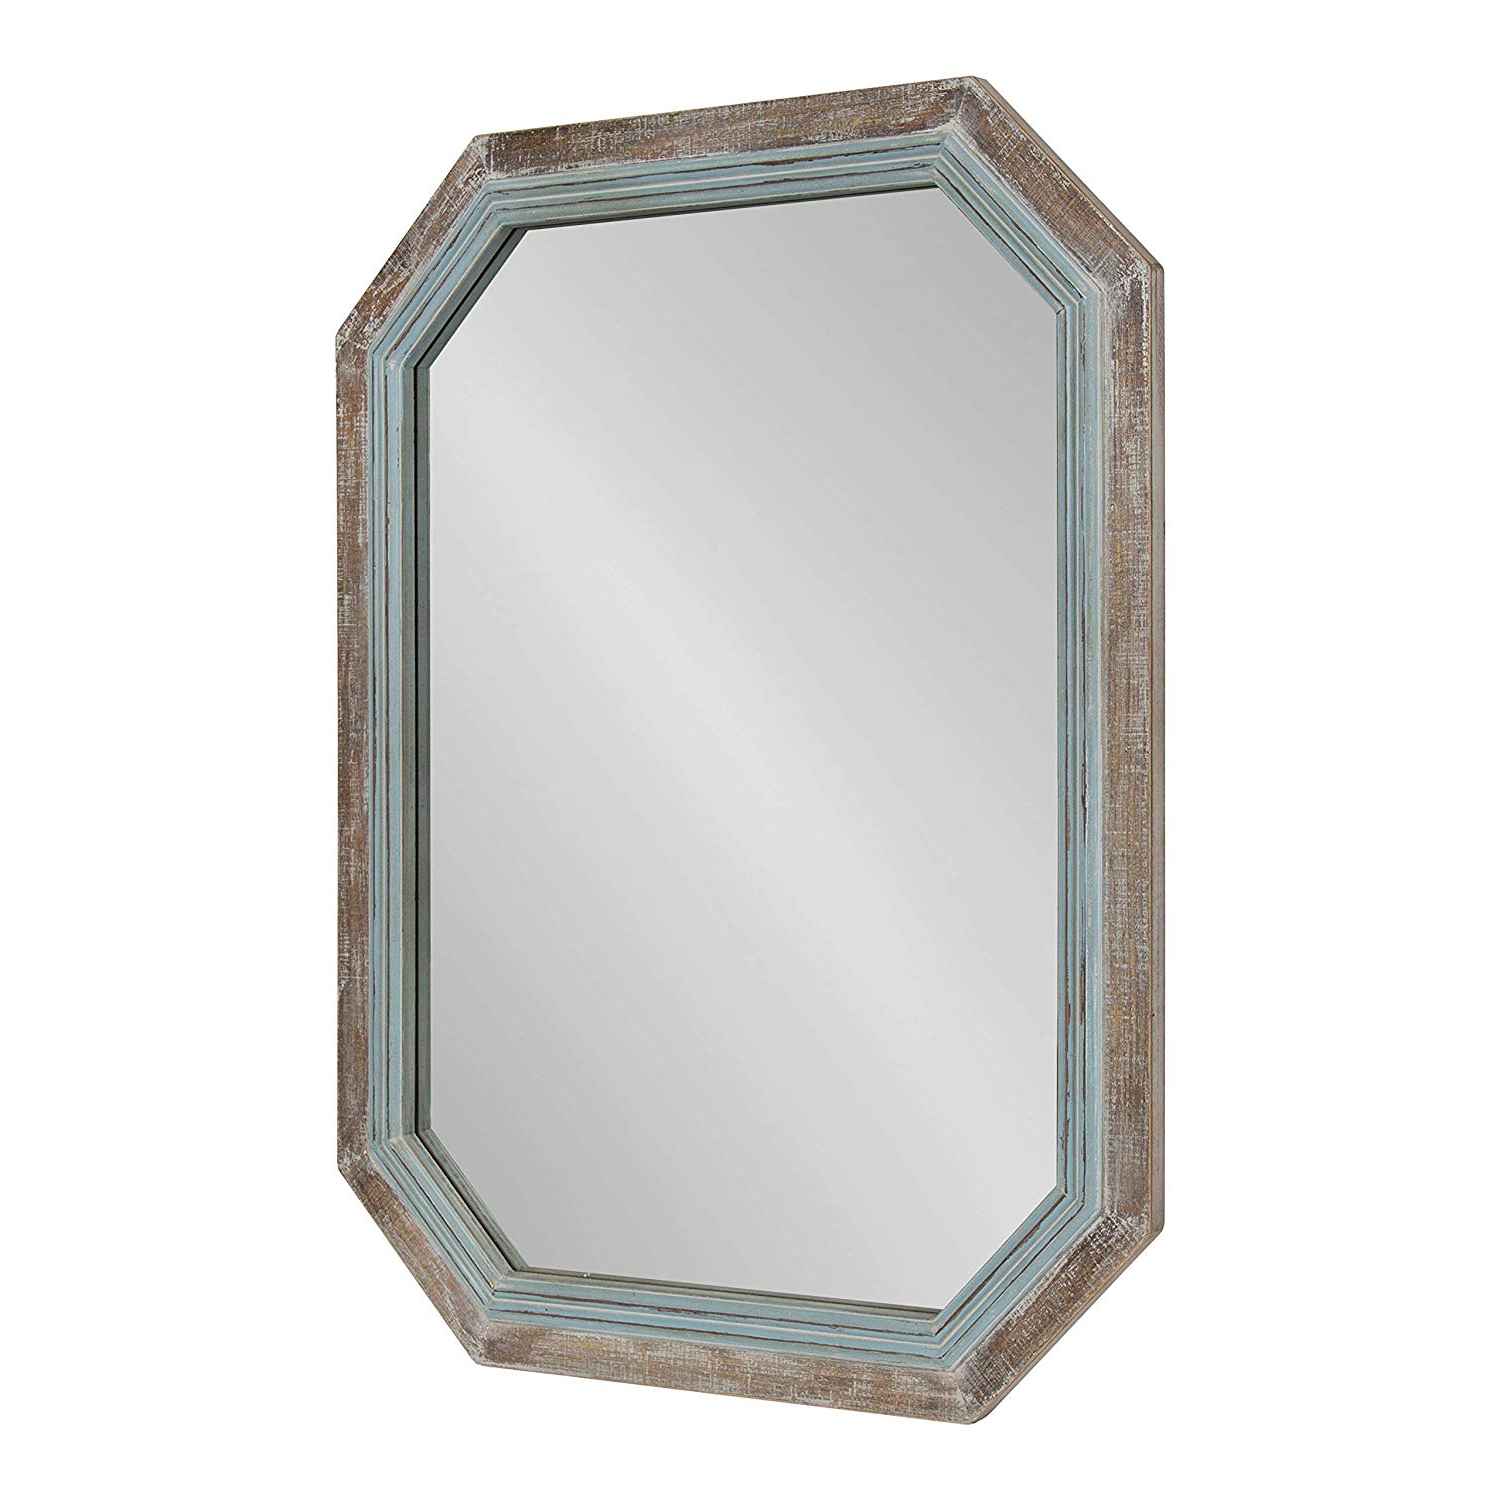 Large Rustic Wall Mirrors Within Favorite Kate And Laurel Palmer Large Rustic Farmhouse Wooden Octagon Wall Mirror, Distressed Two Tone Coastal Blue And Natural, 36X (View 18 of 20)